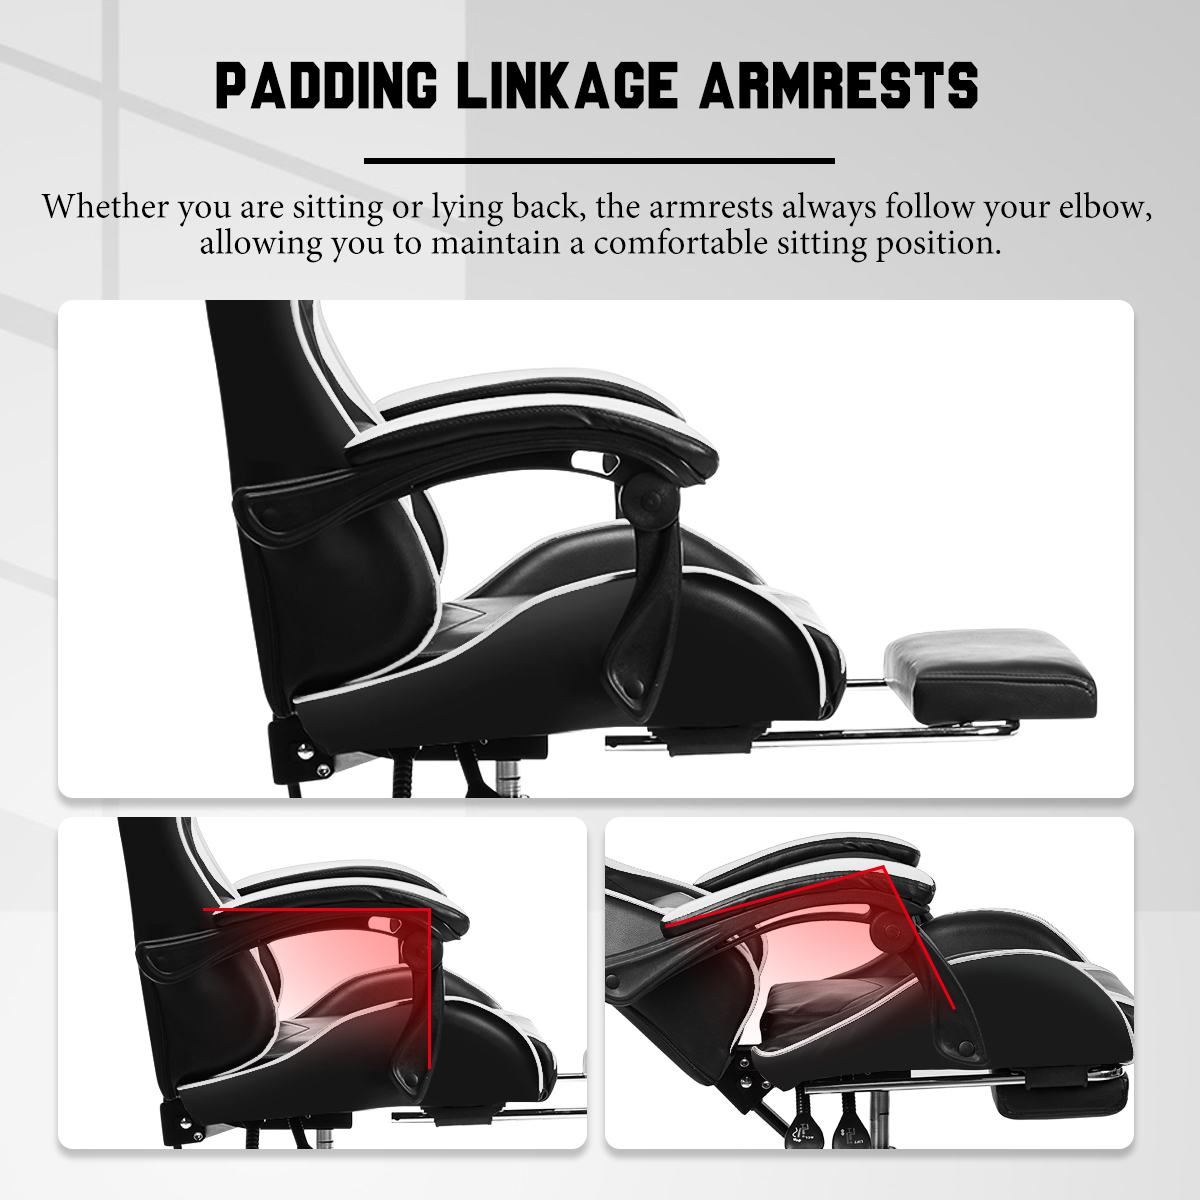 Ha8978da33772474c940d694ee8ae4137k - Leather Office Gaming Chair Home Internet Cafe Racing Chair WCG Gaming Ergonomic Computer Chair Swivel Lifting Lying Gamer Chair